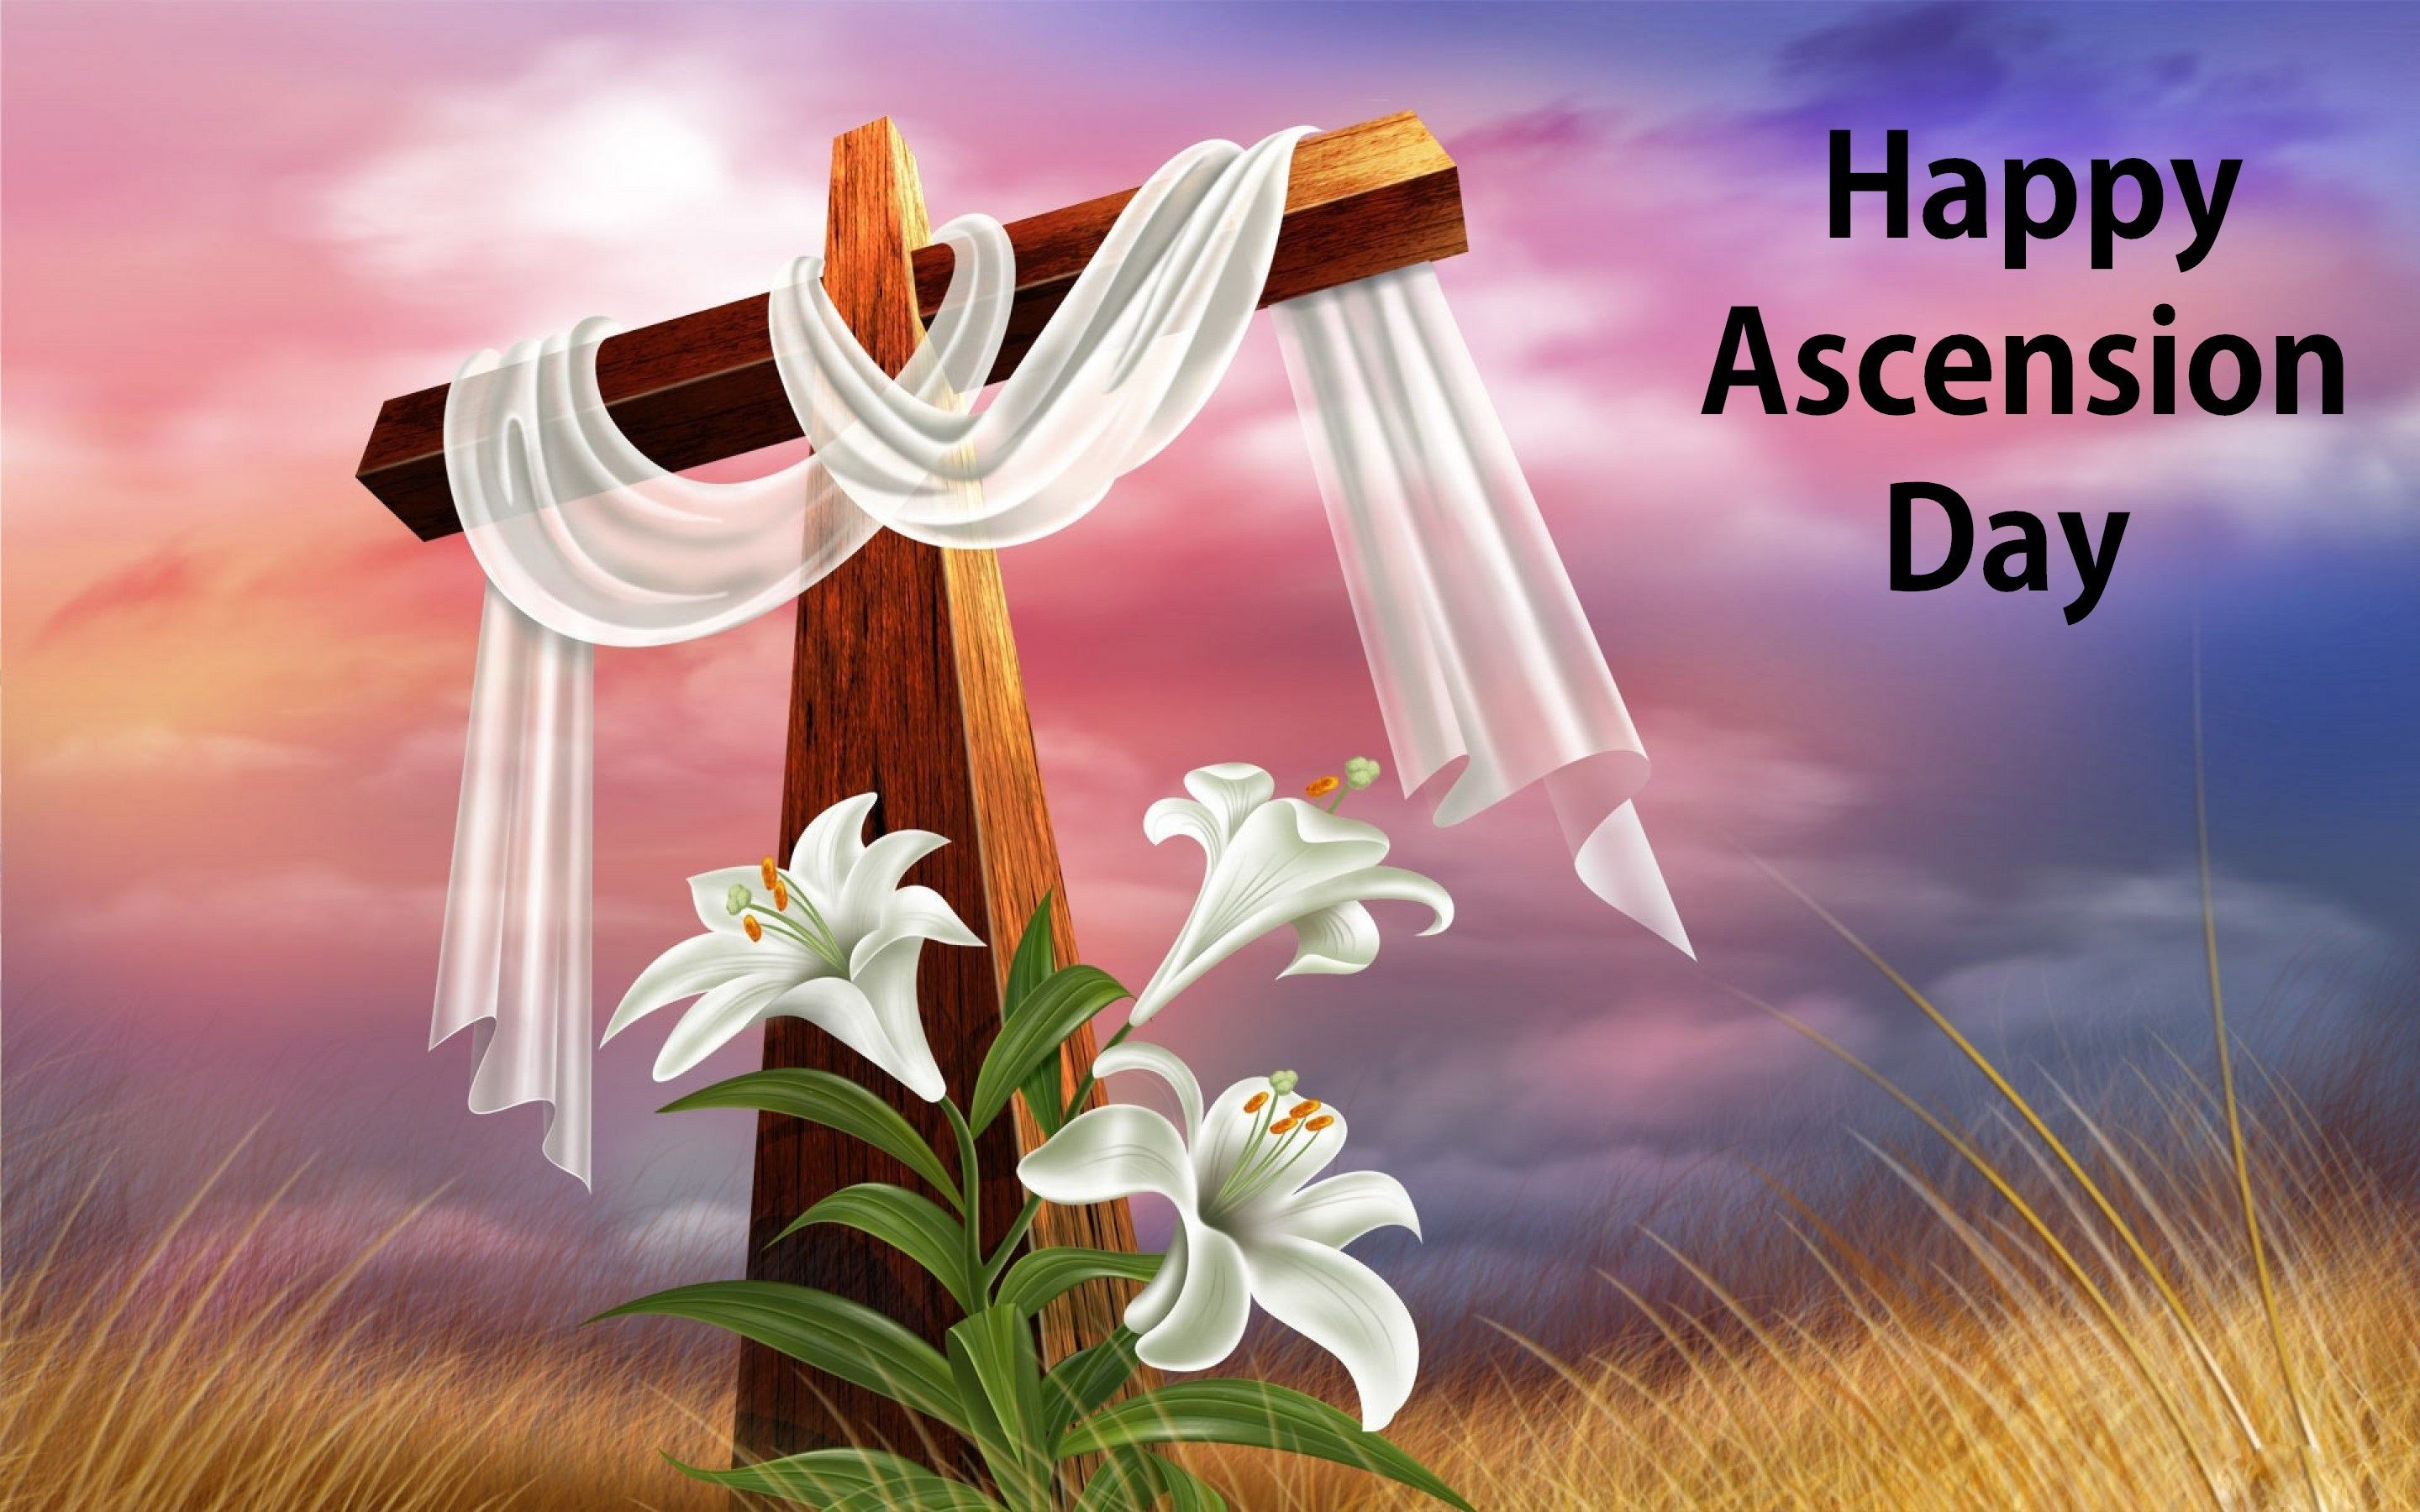 Happy Ascension Day Happy Easter Sunday Easter Wallpaper Ascension Day